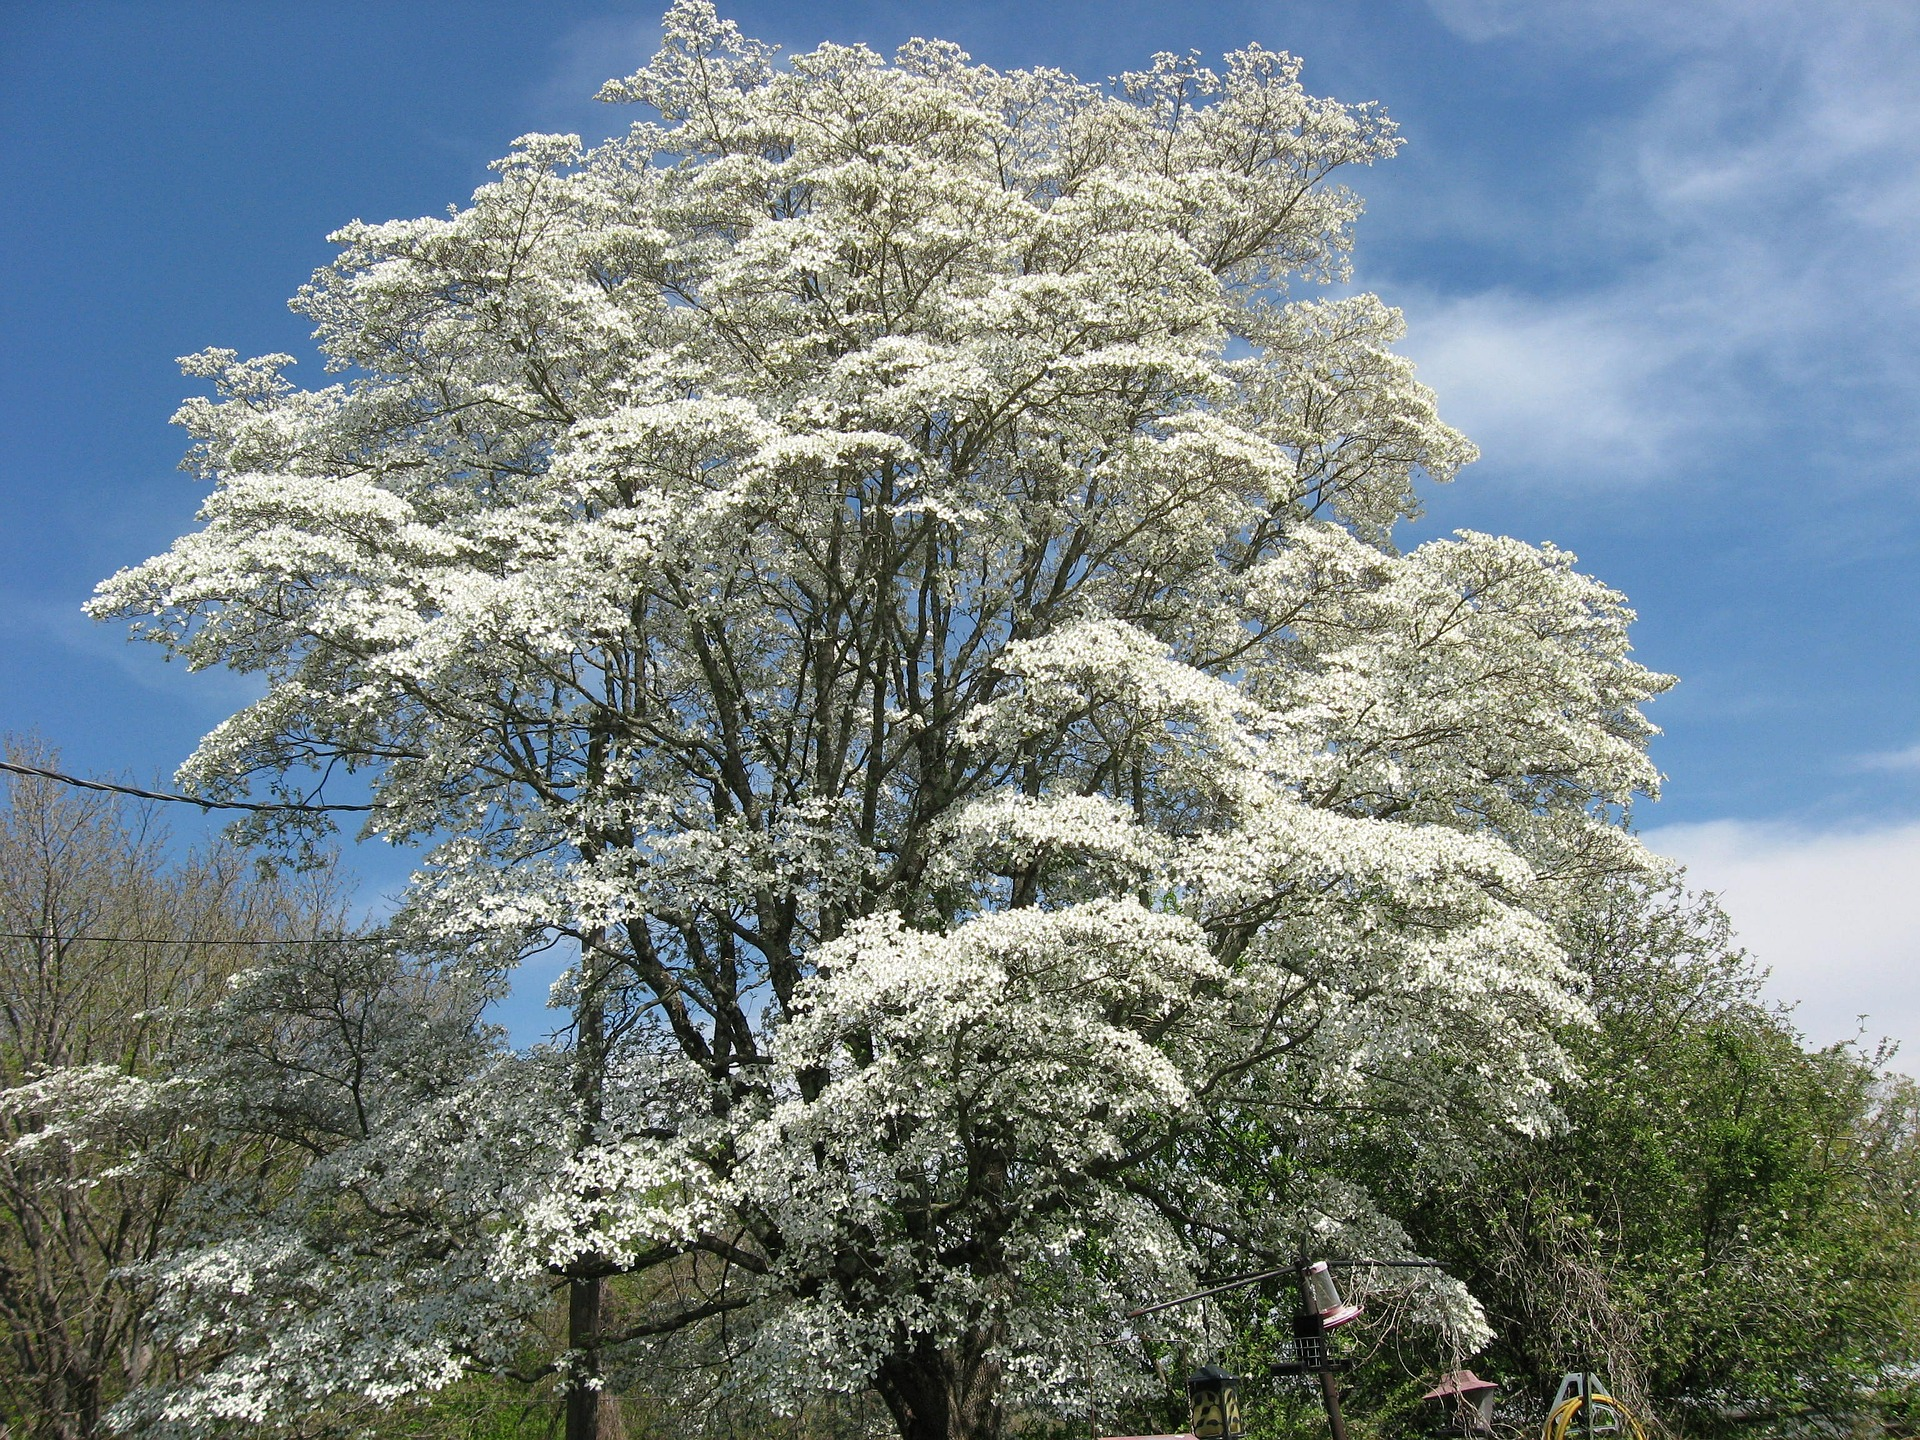 dogwood-tree-354002_1920